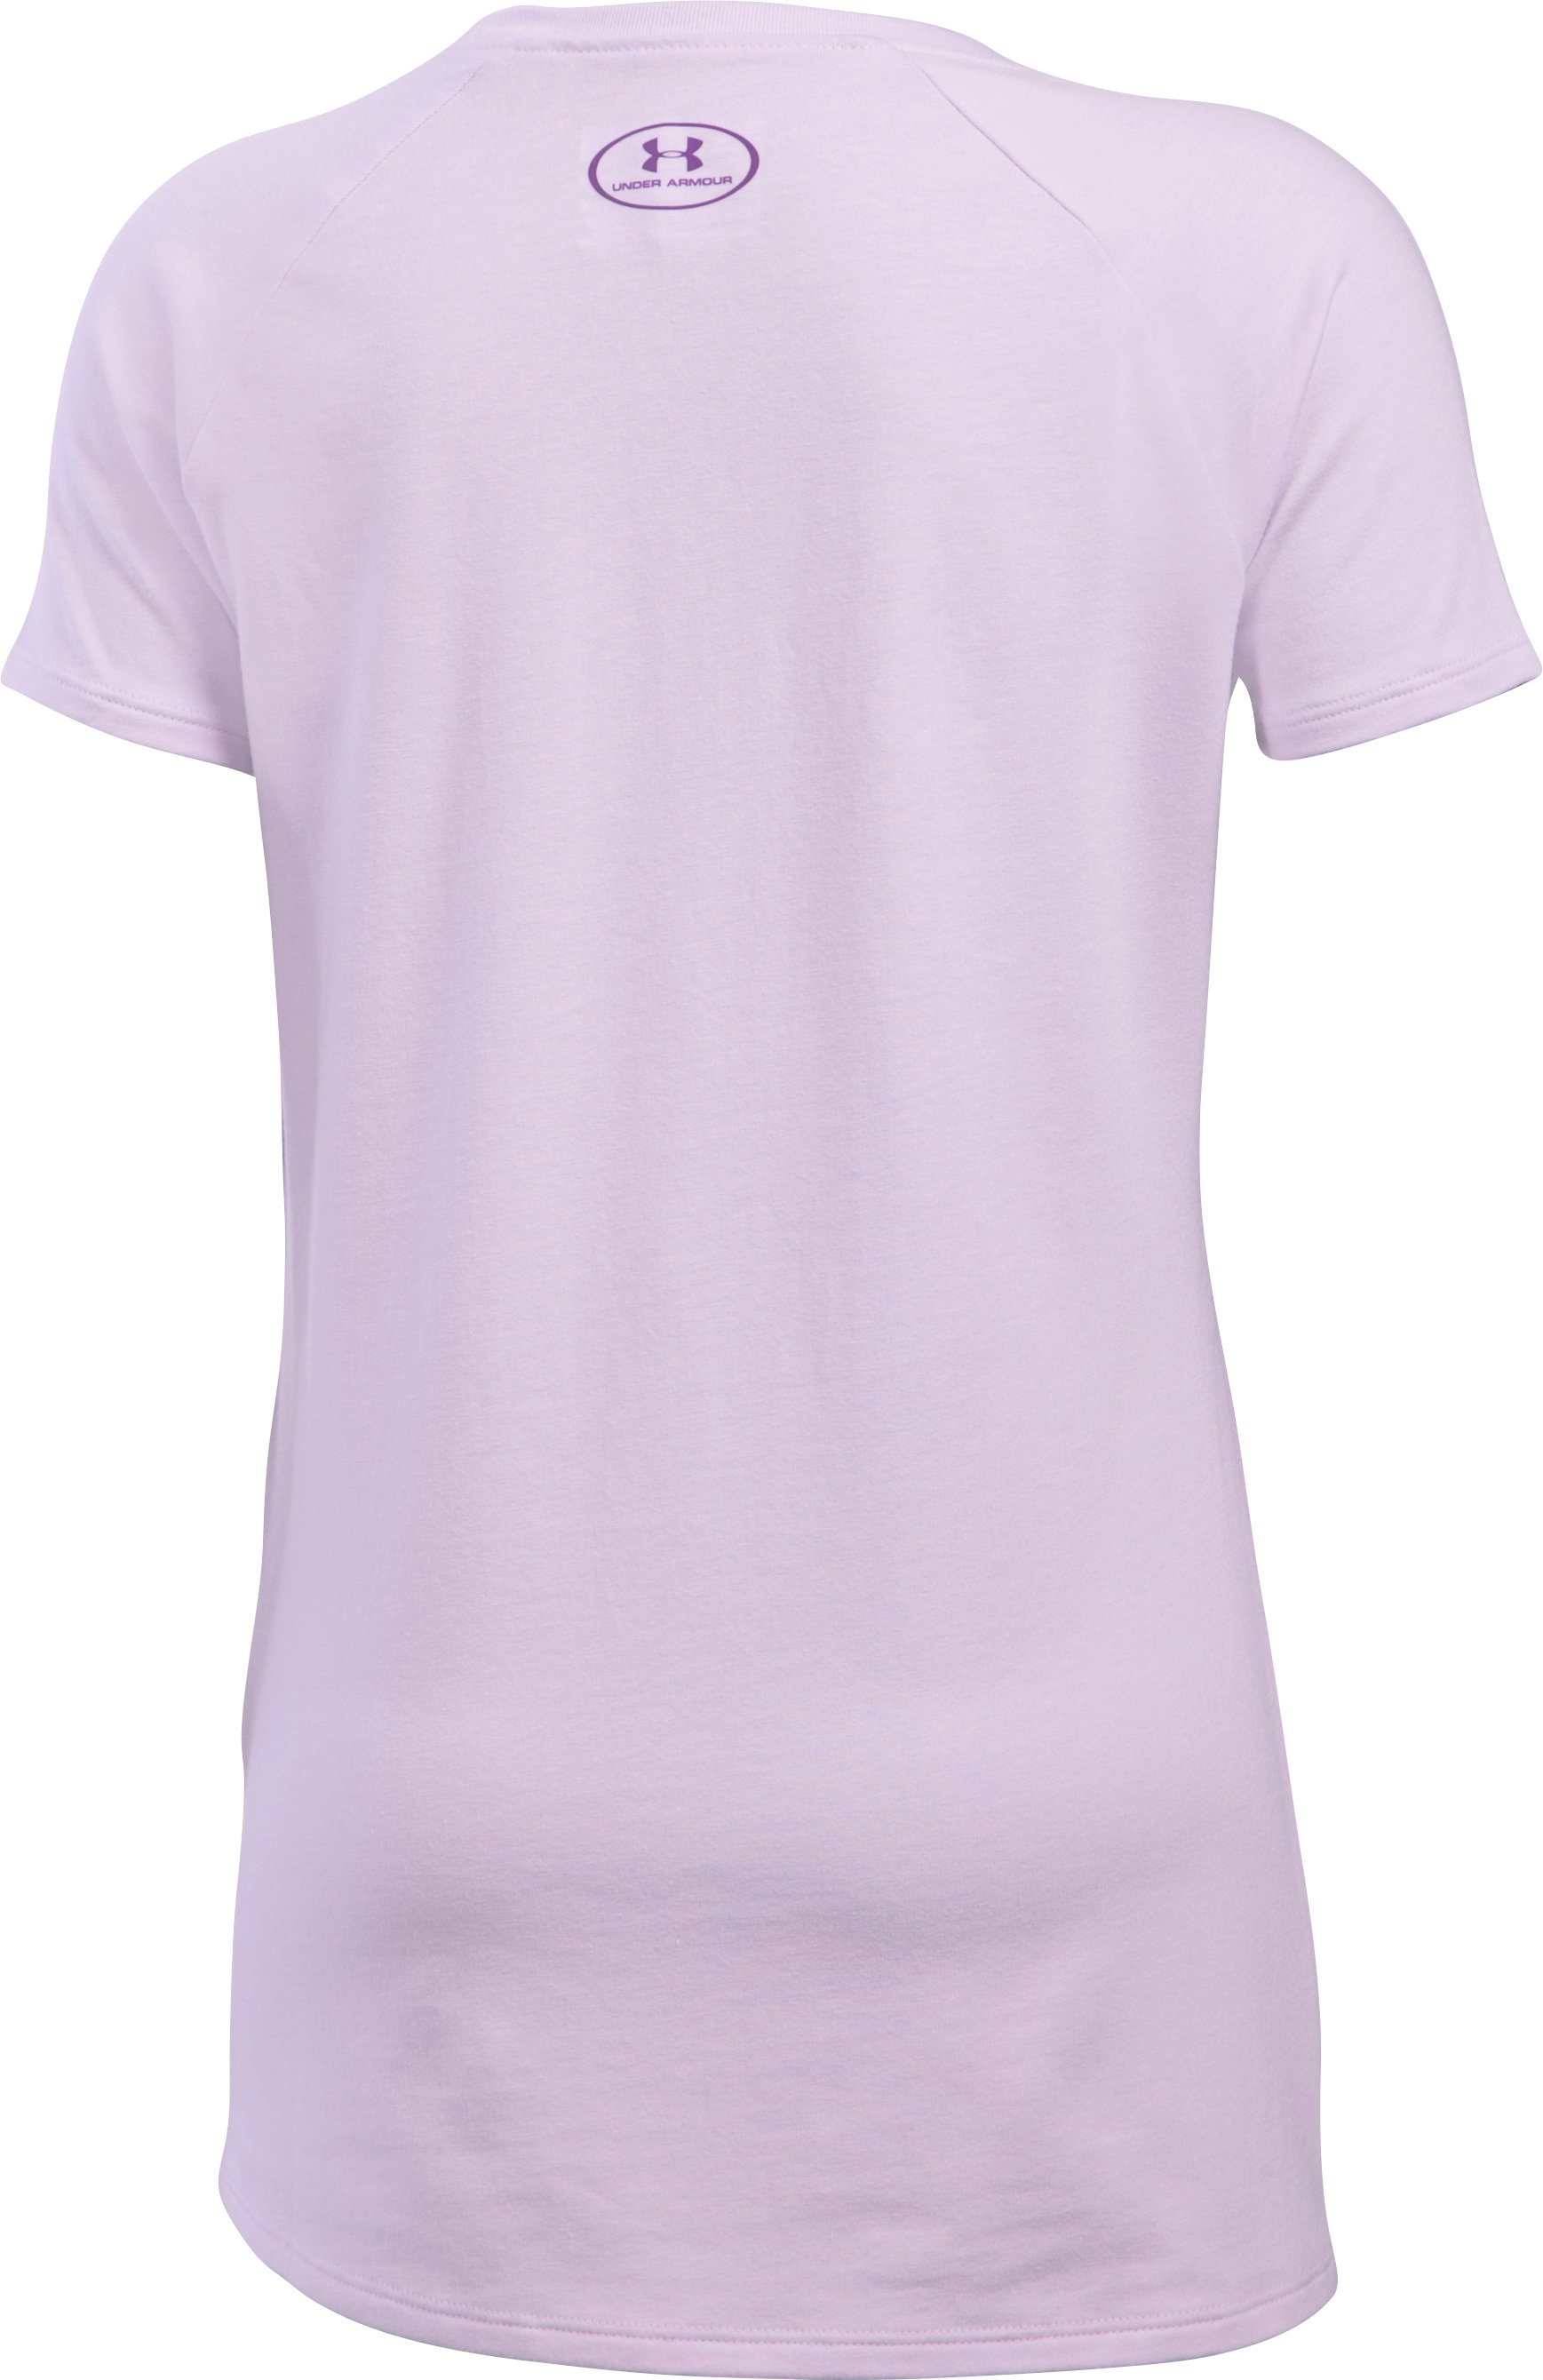 Girls' UA Too Good To Ignore T-Shirt, SMOKY GRAPE, undefined